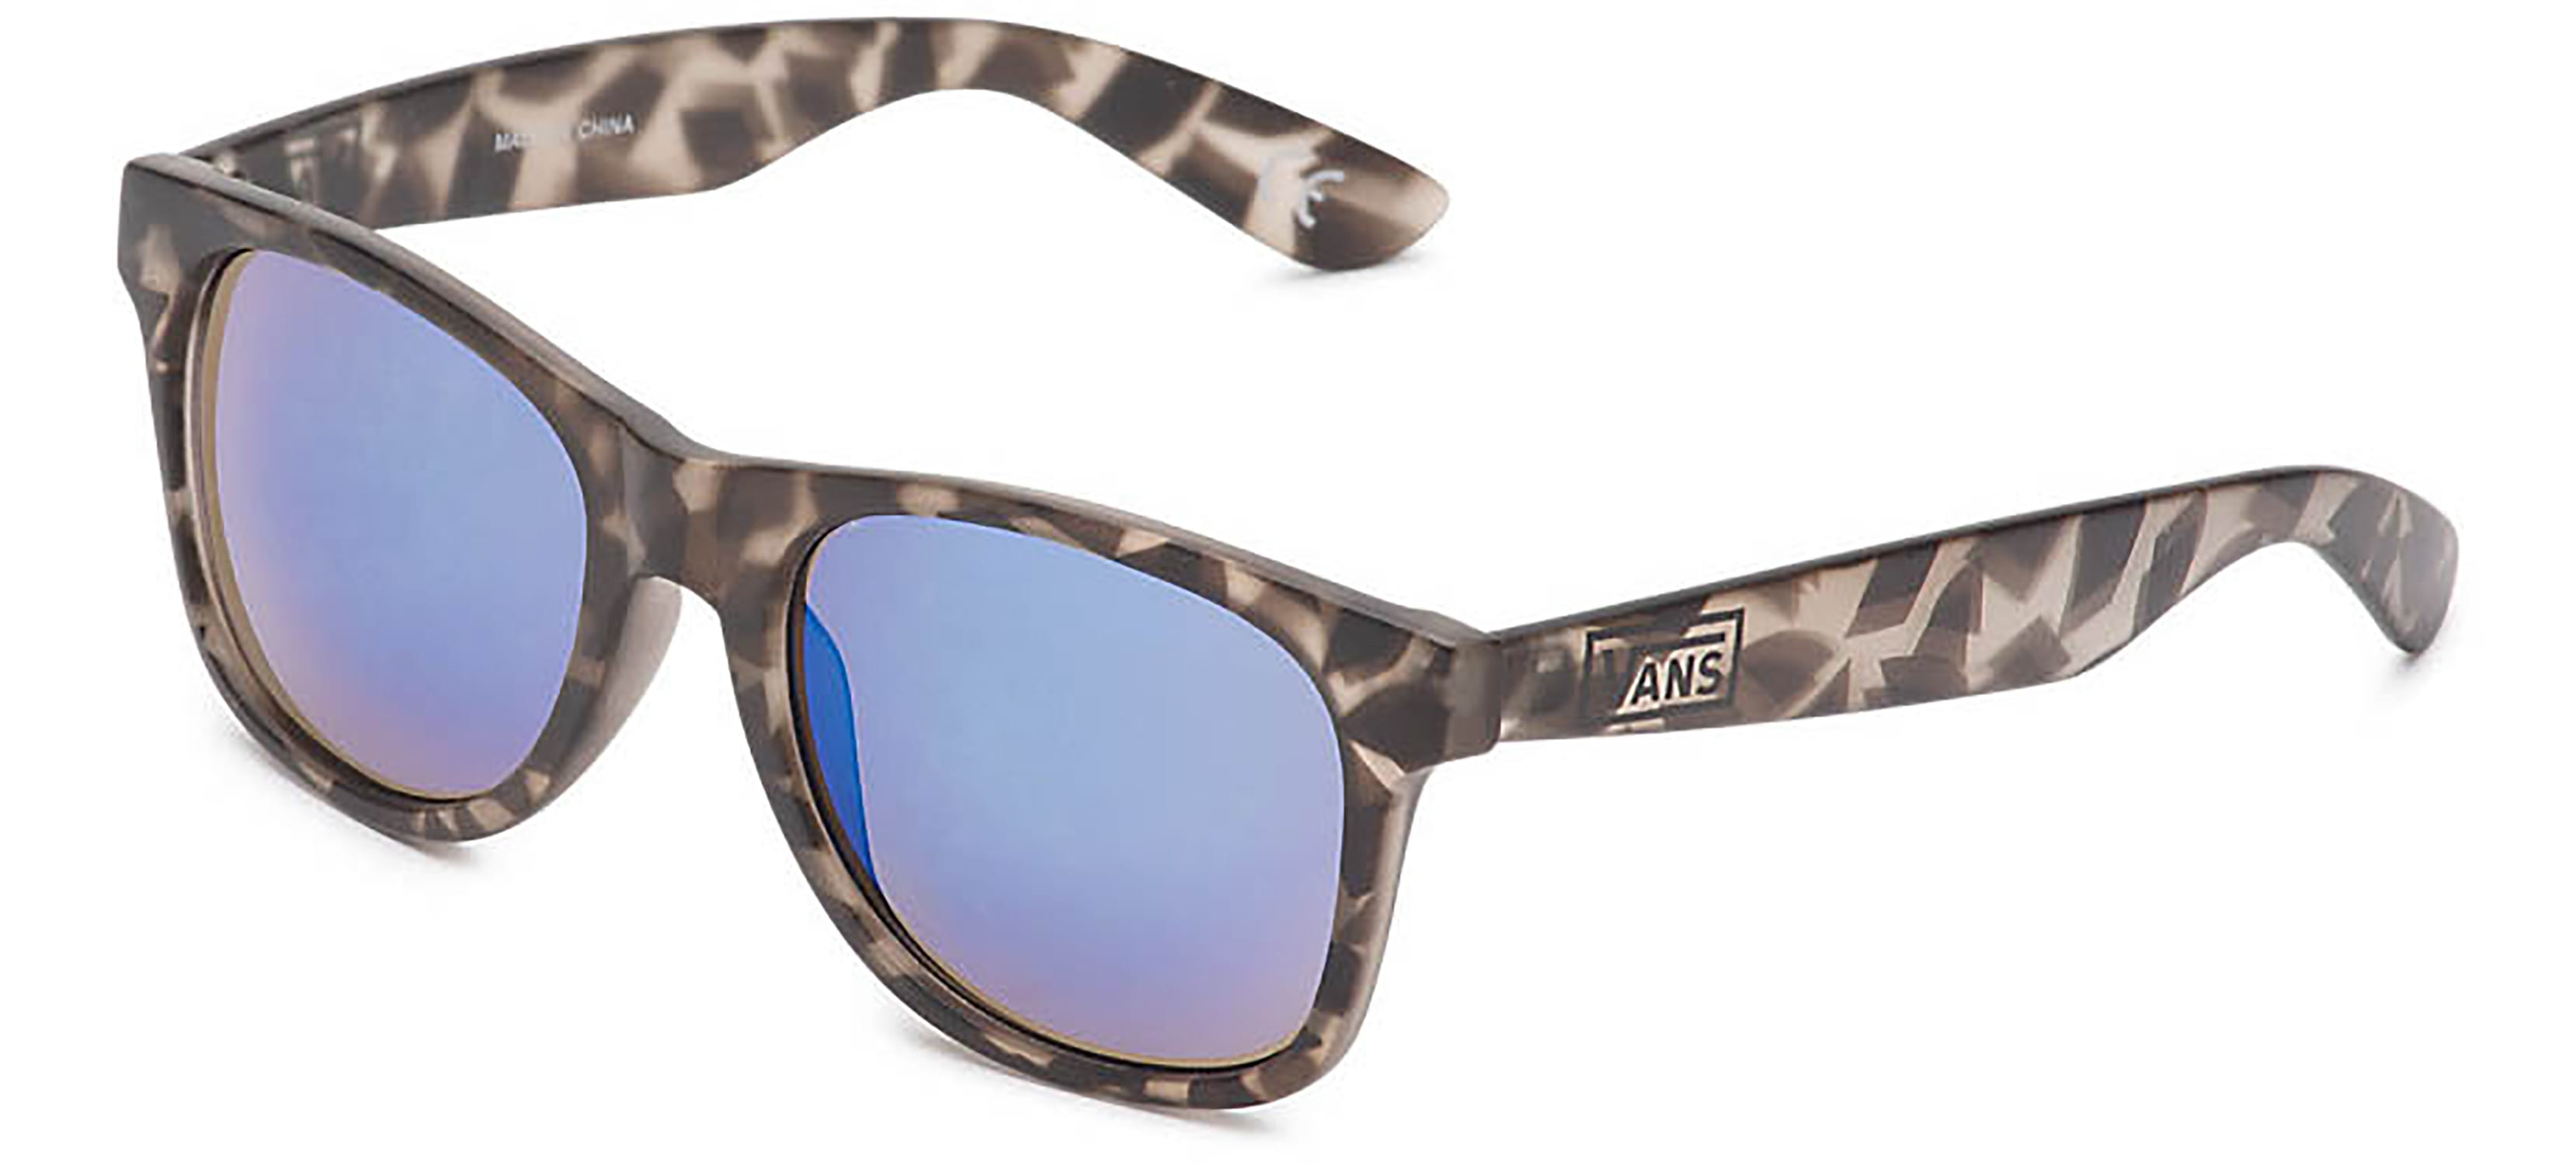 Cans Sunglasses Prices  on vans oli 4 sunglasses